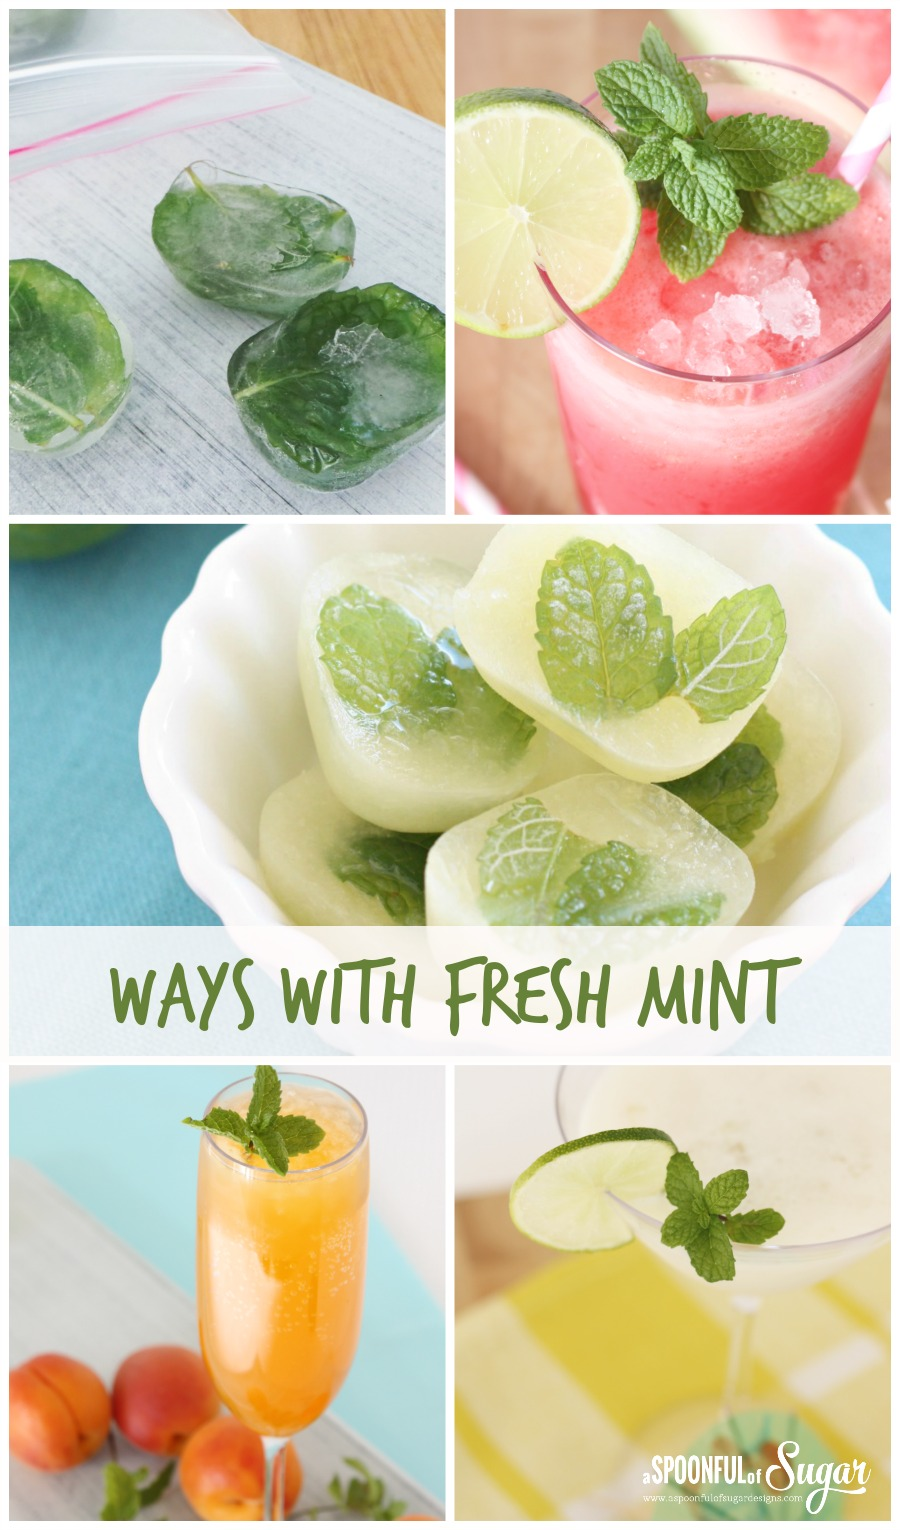 Ways with Fresh mint